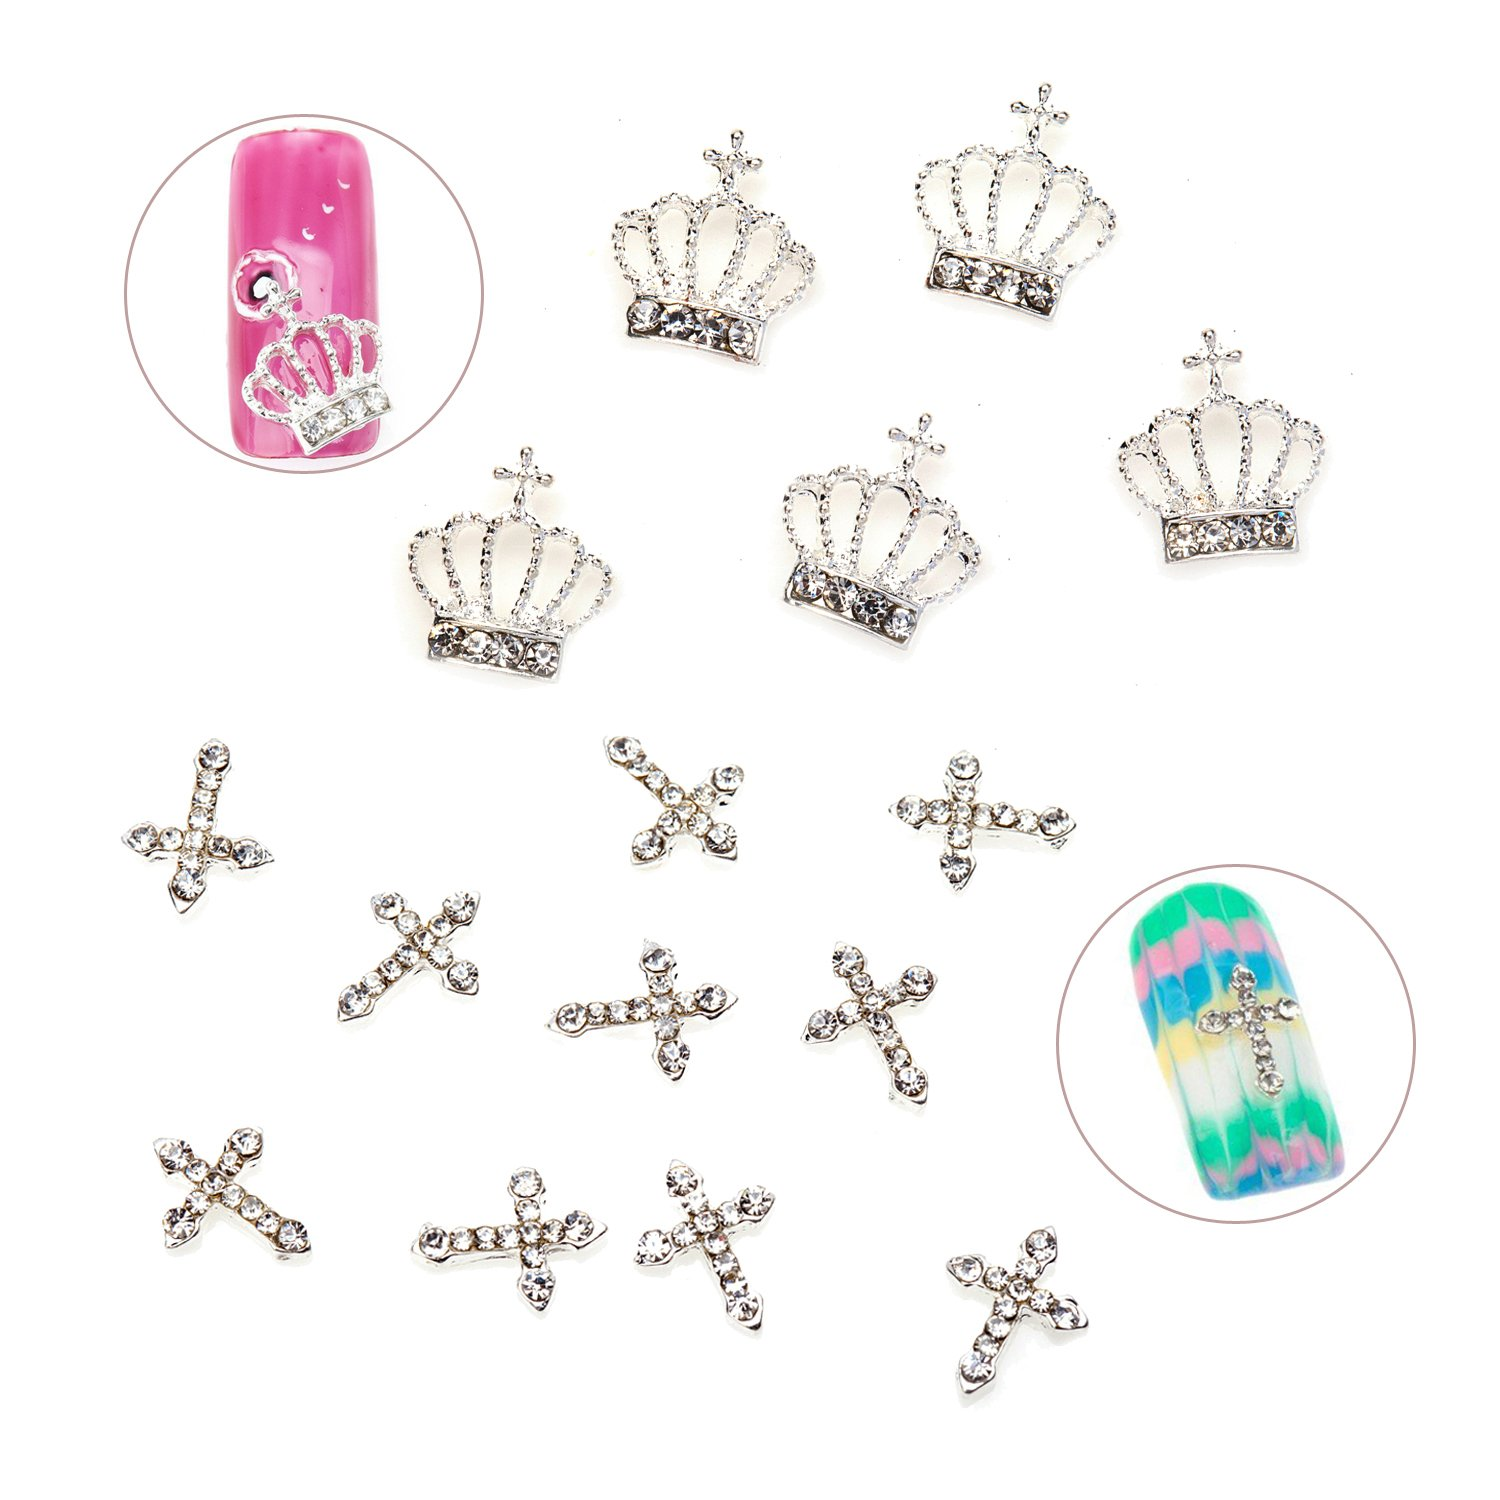 Unique Manicure Nail Art Set Kit of Metal 3D Decorations Crowns And Crosses With Rhinestones Gems Crystals Jewels By VAGA®